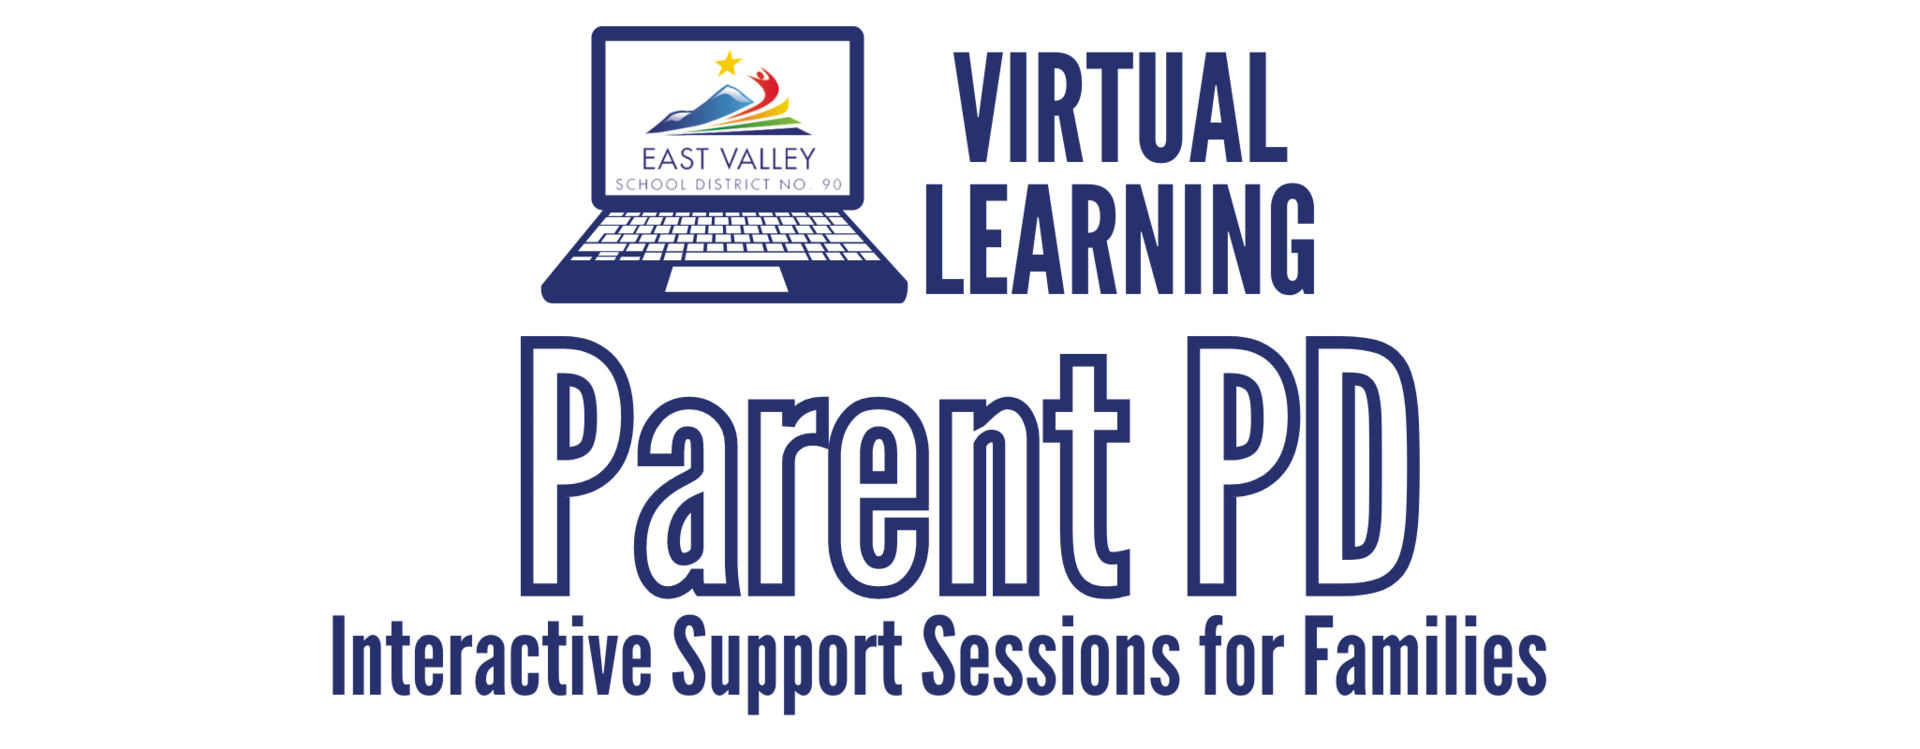 Virtual Learning Parent PD - Interactive Sessions for Parents